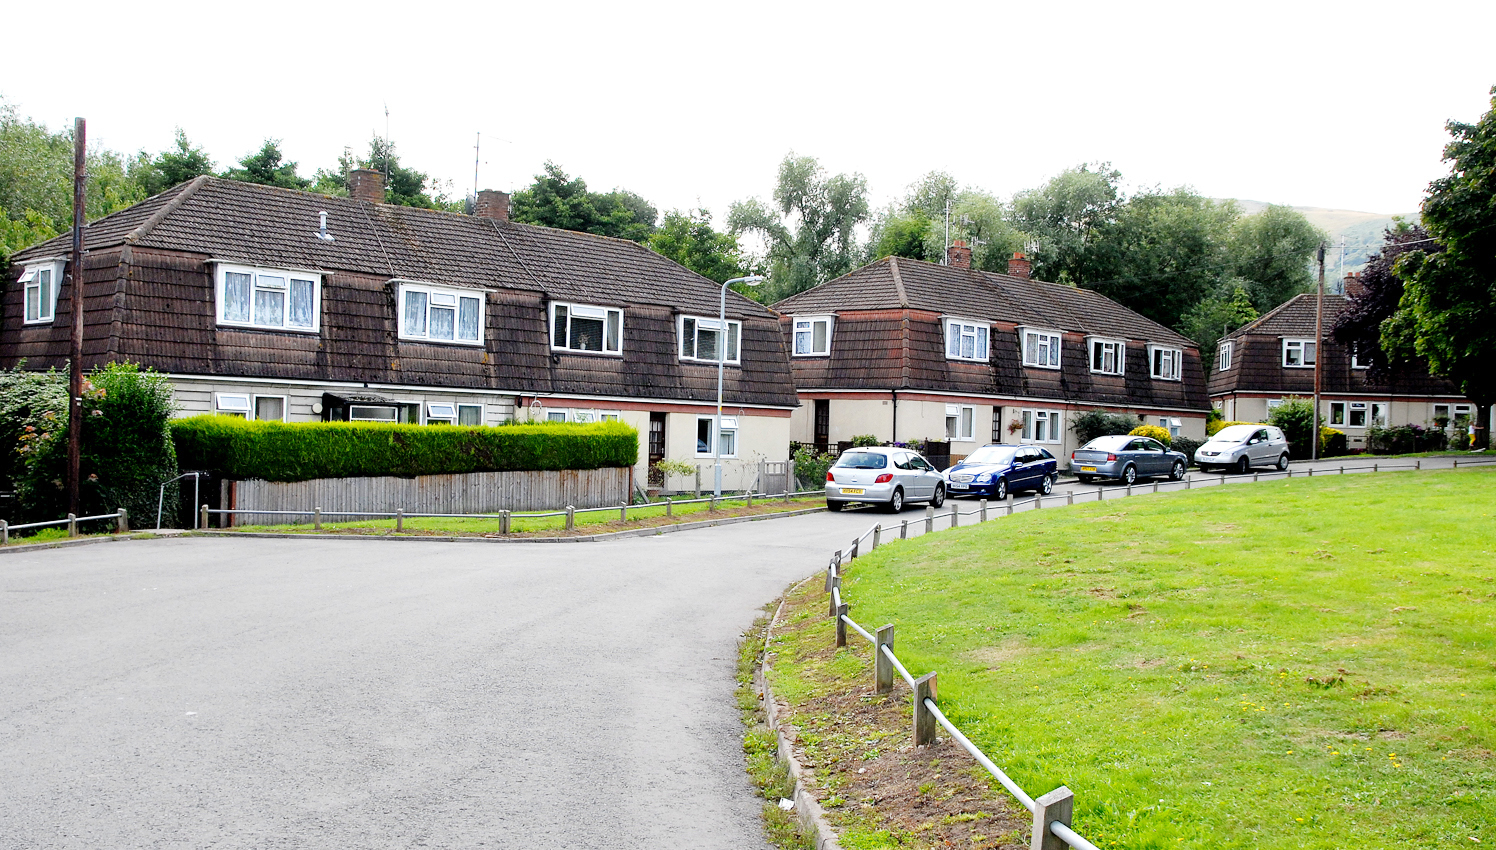 Plans for 92 homes in Malvern given the green light